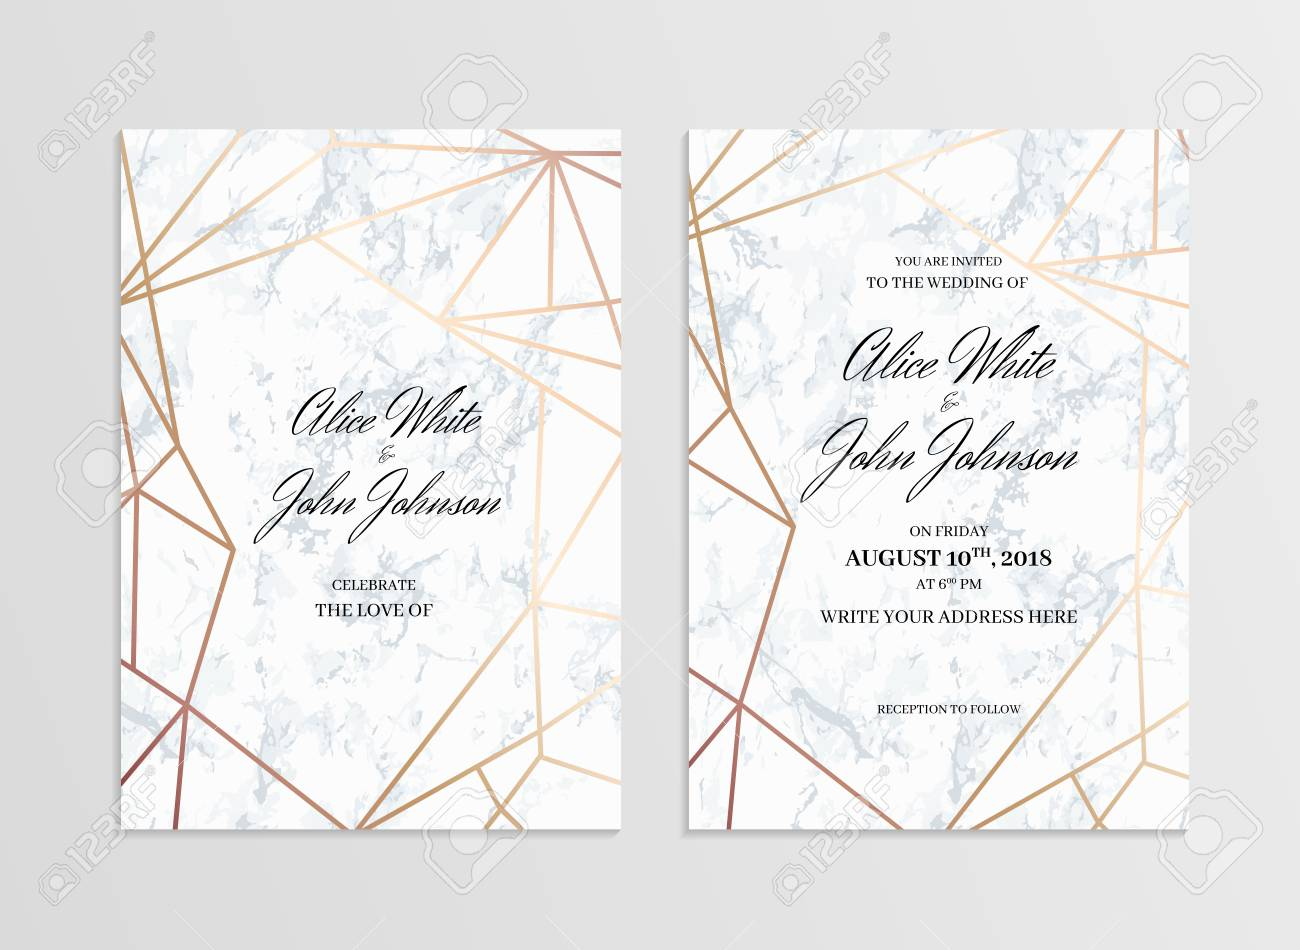 Invitation Card Template Of Geometric Design. Two Side. Invitation ...